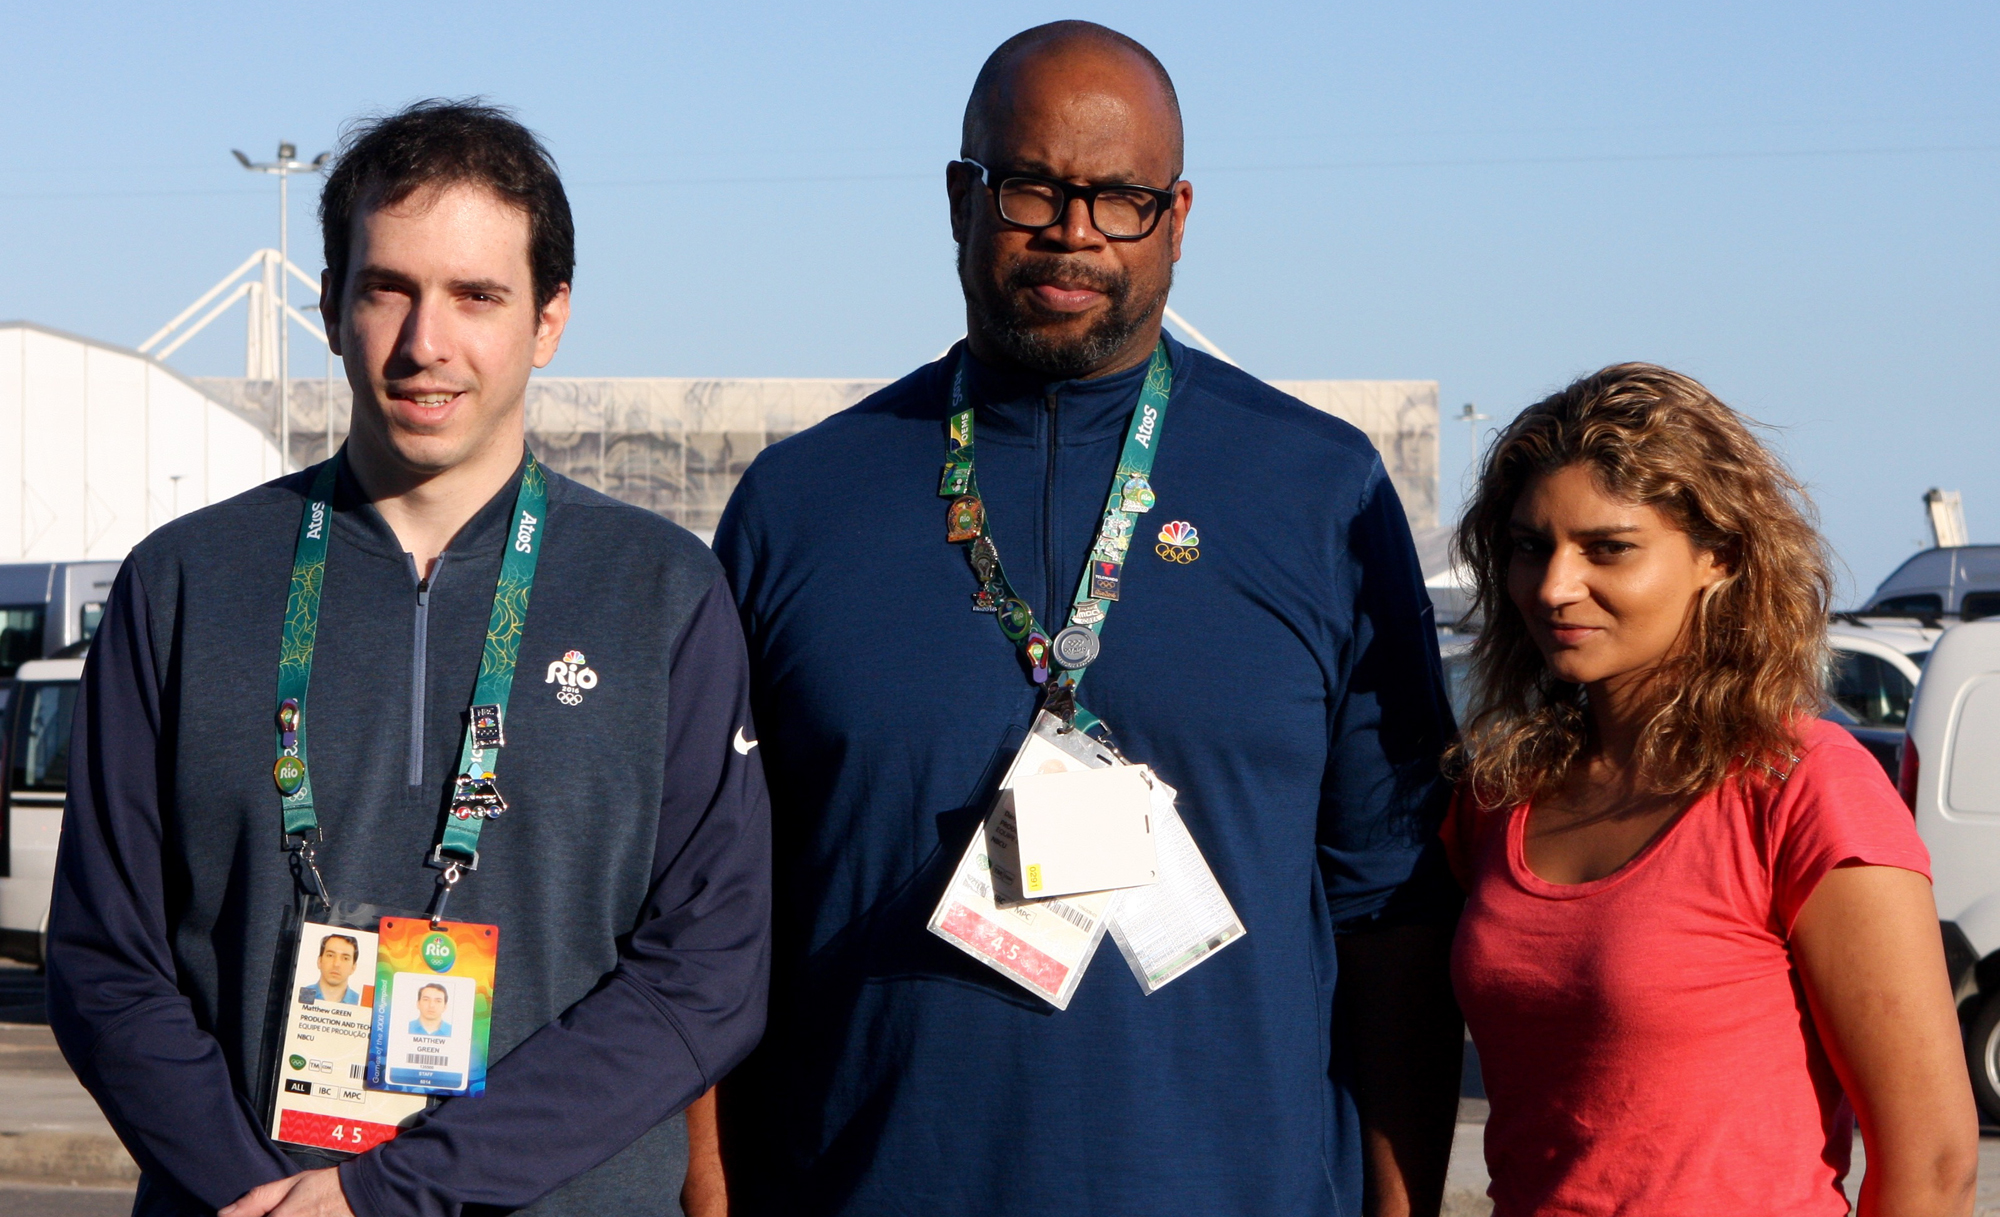 From left: Senior Digital Media Manager Matthew Green, VP, Post Operations & Digital Workflow Darryl Jefferson, Engineer, Digital Workflows Kamal Bhangle have played key roles in NBC Olympics' content management infrastructure for these Rio Games.